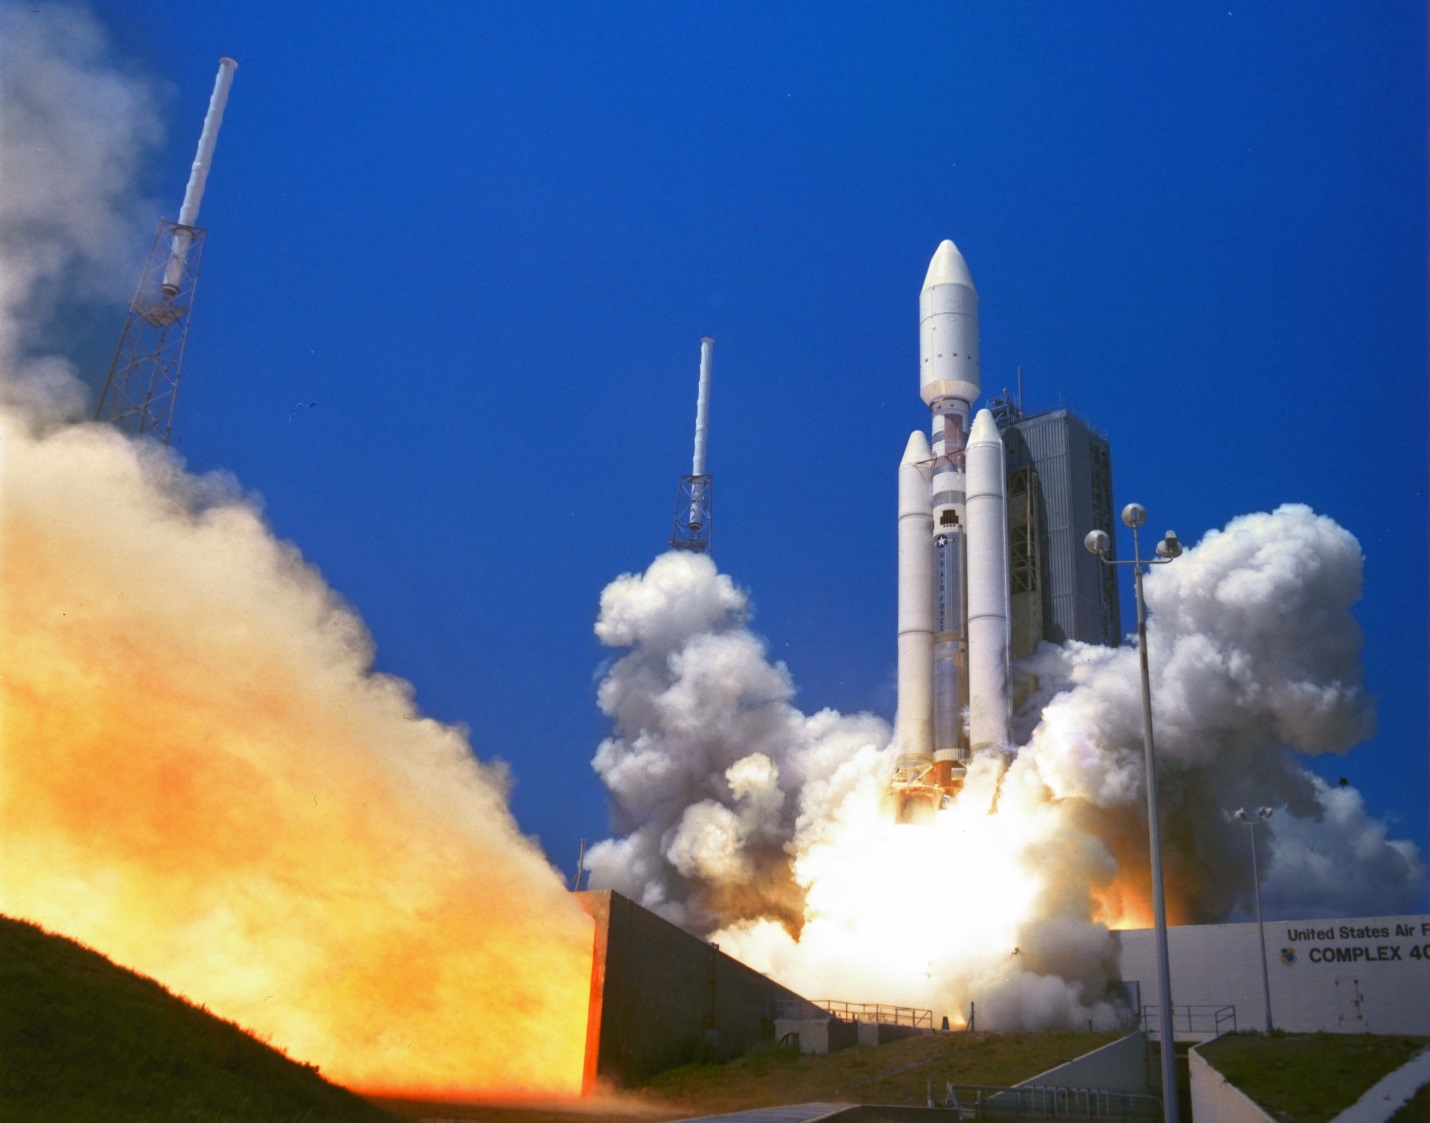 May 2000 launch of a Titan rocket - Lockheed Martin photo posted on SpaceFlight Insider